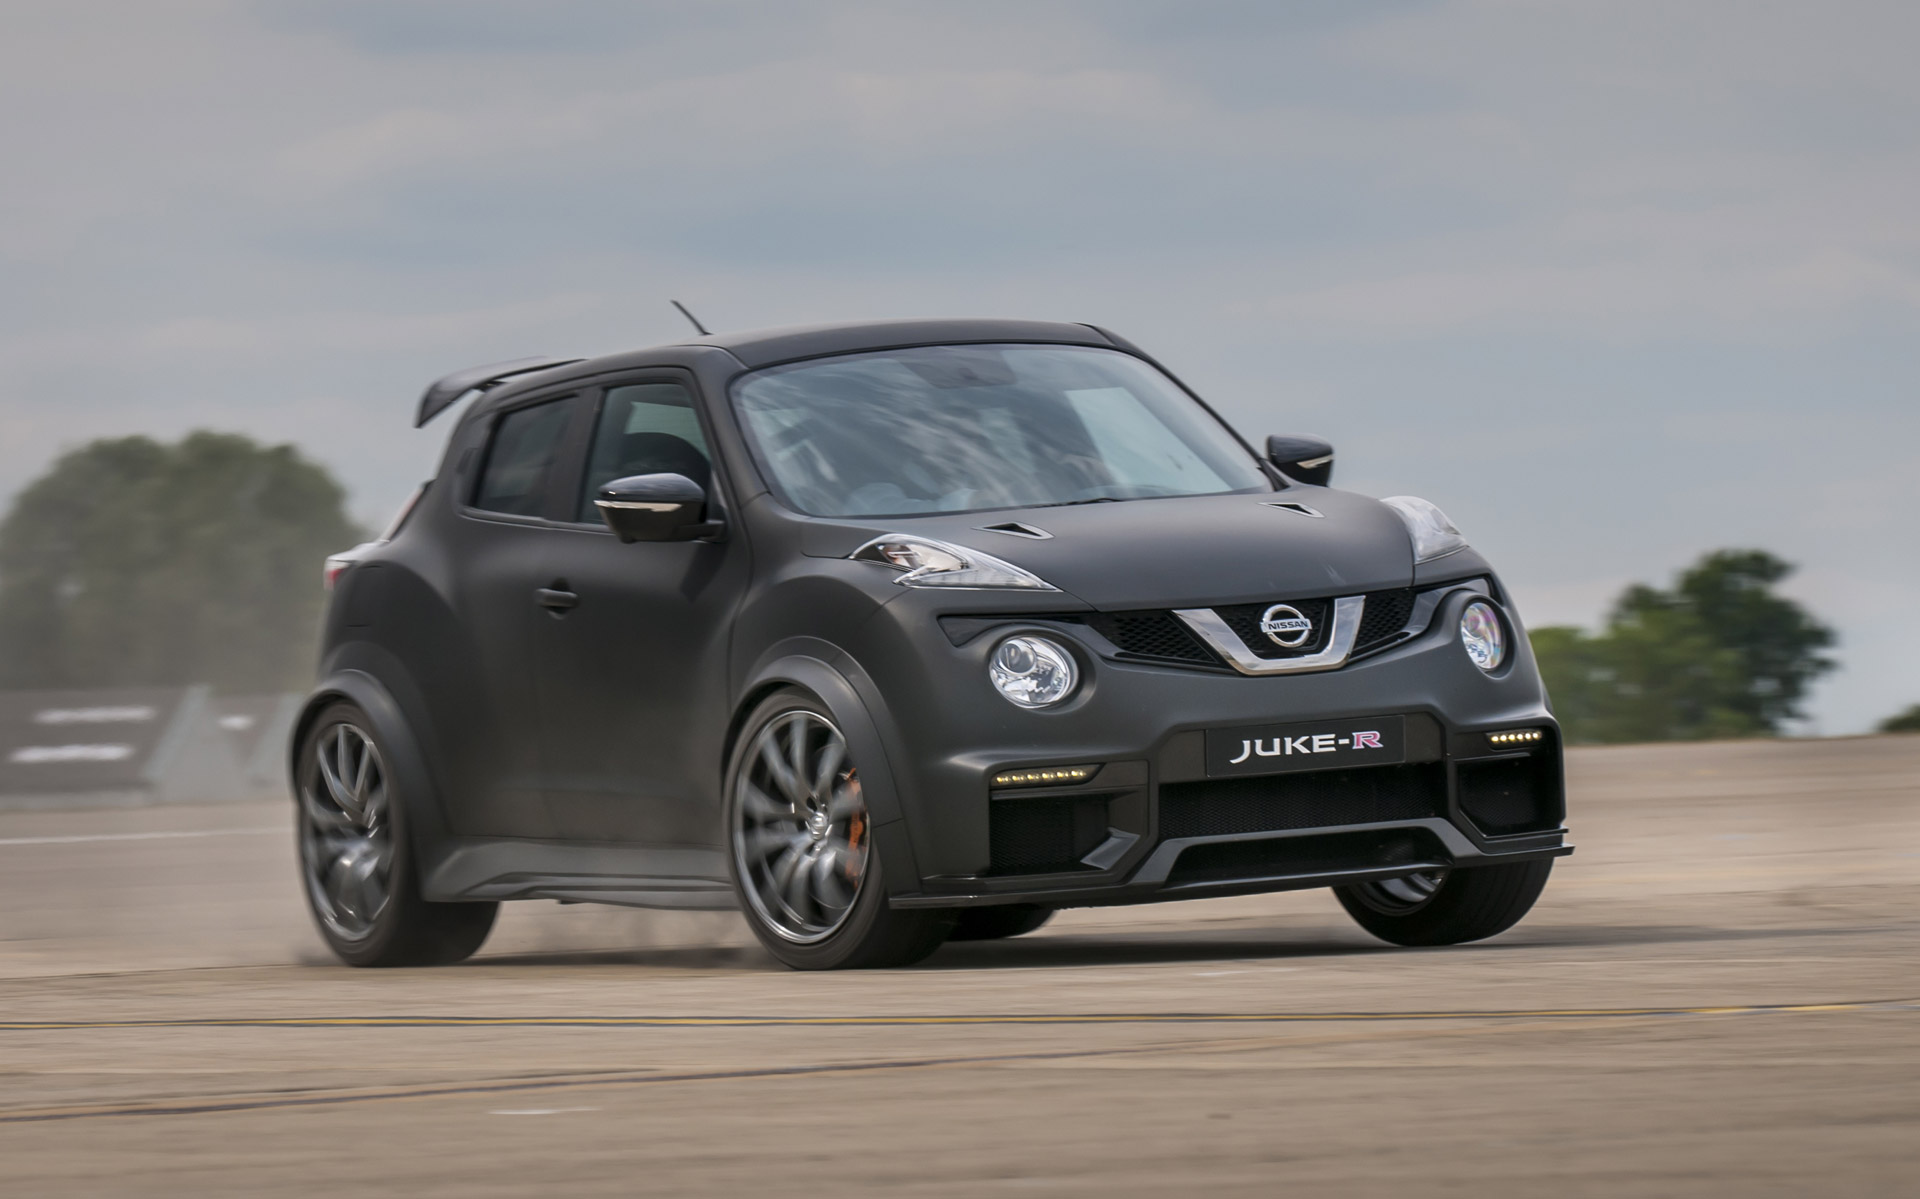 NISSAN Unveiled 600HP Edition Of The Nissan Juke-R 2.0 1